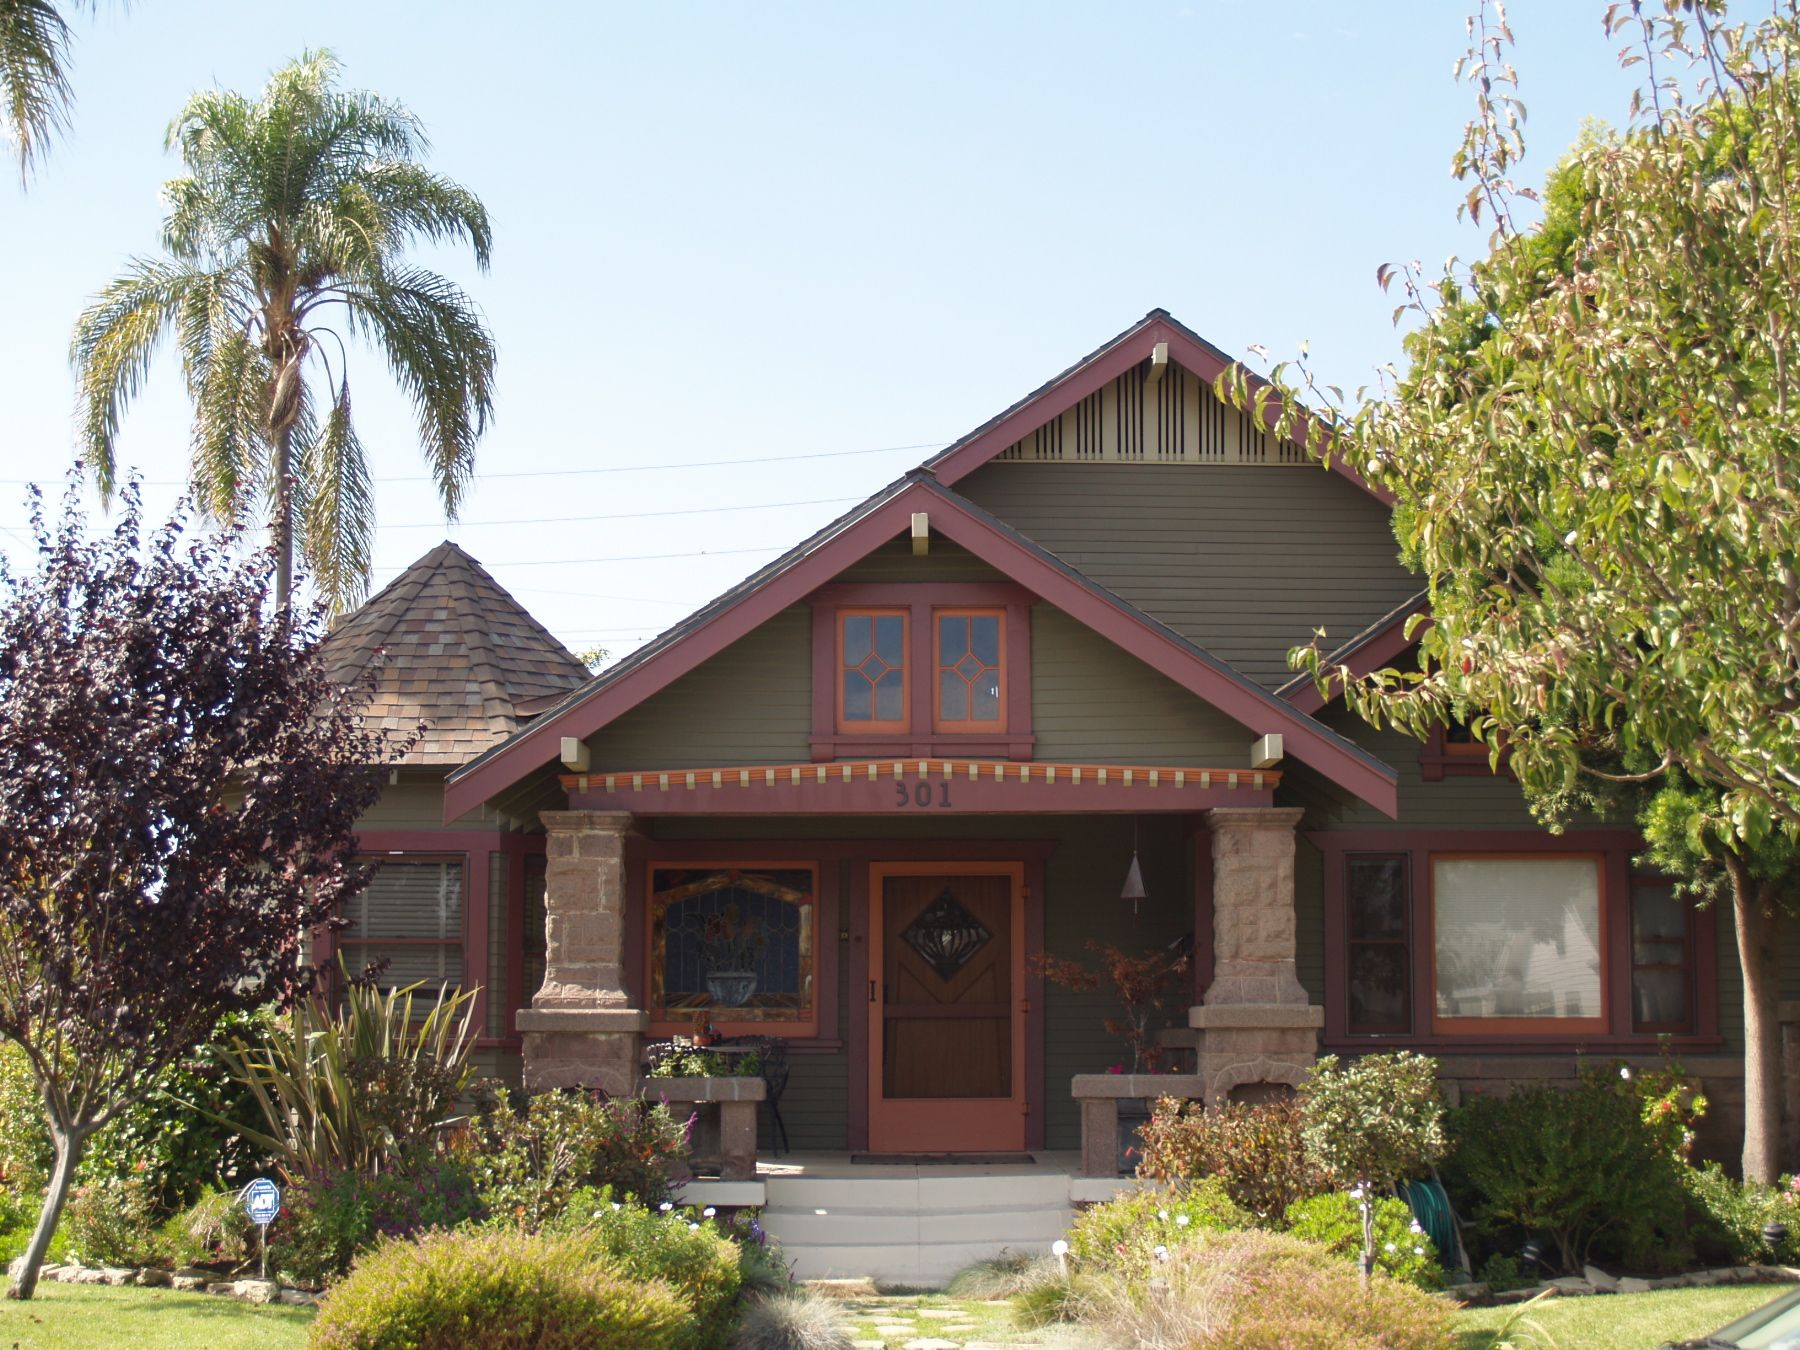 Miner Smith Craftsman Bungalow House In Long Beach California I Am Not Sure But This